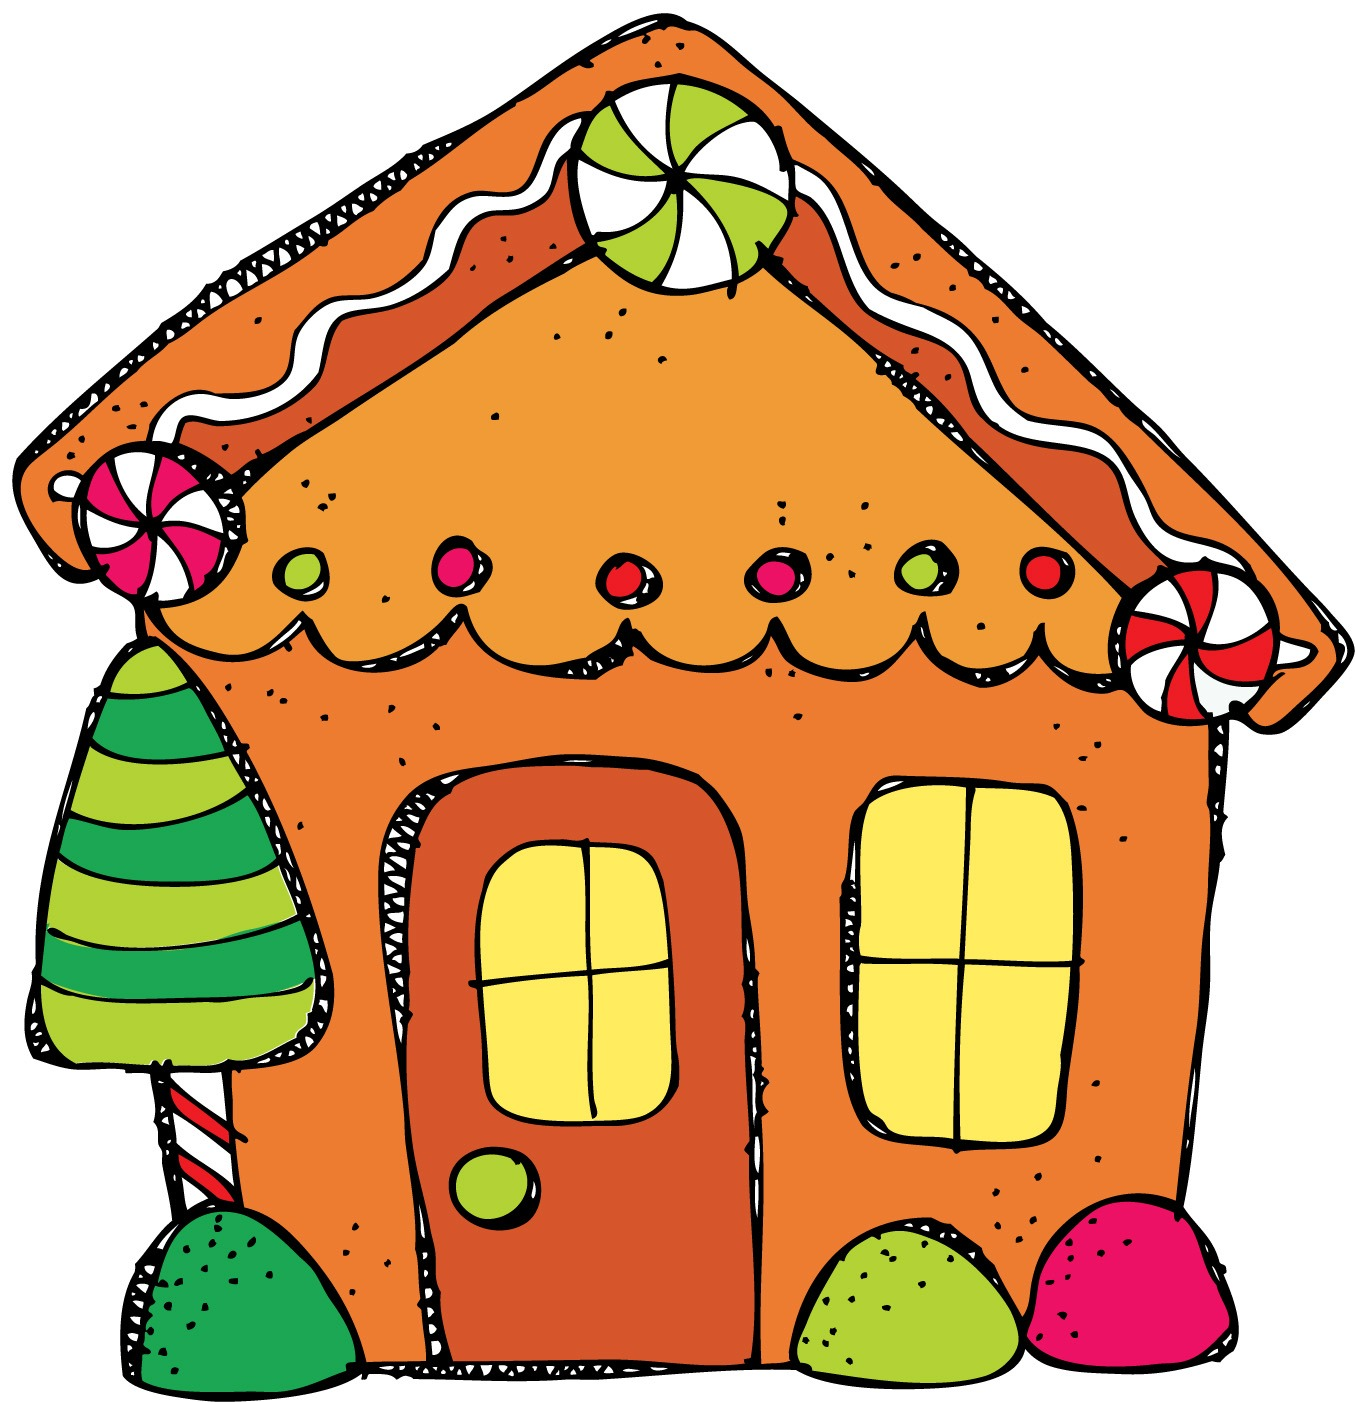 Gingerbread House Clip Art Fr - Gingerbread House Clip Art